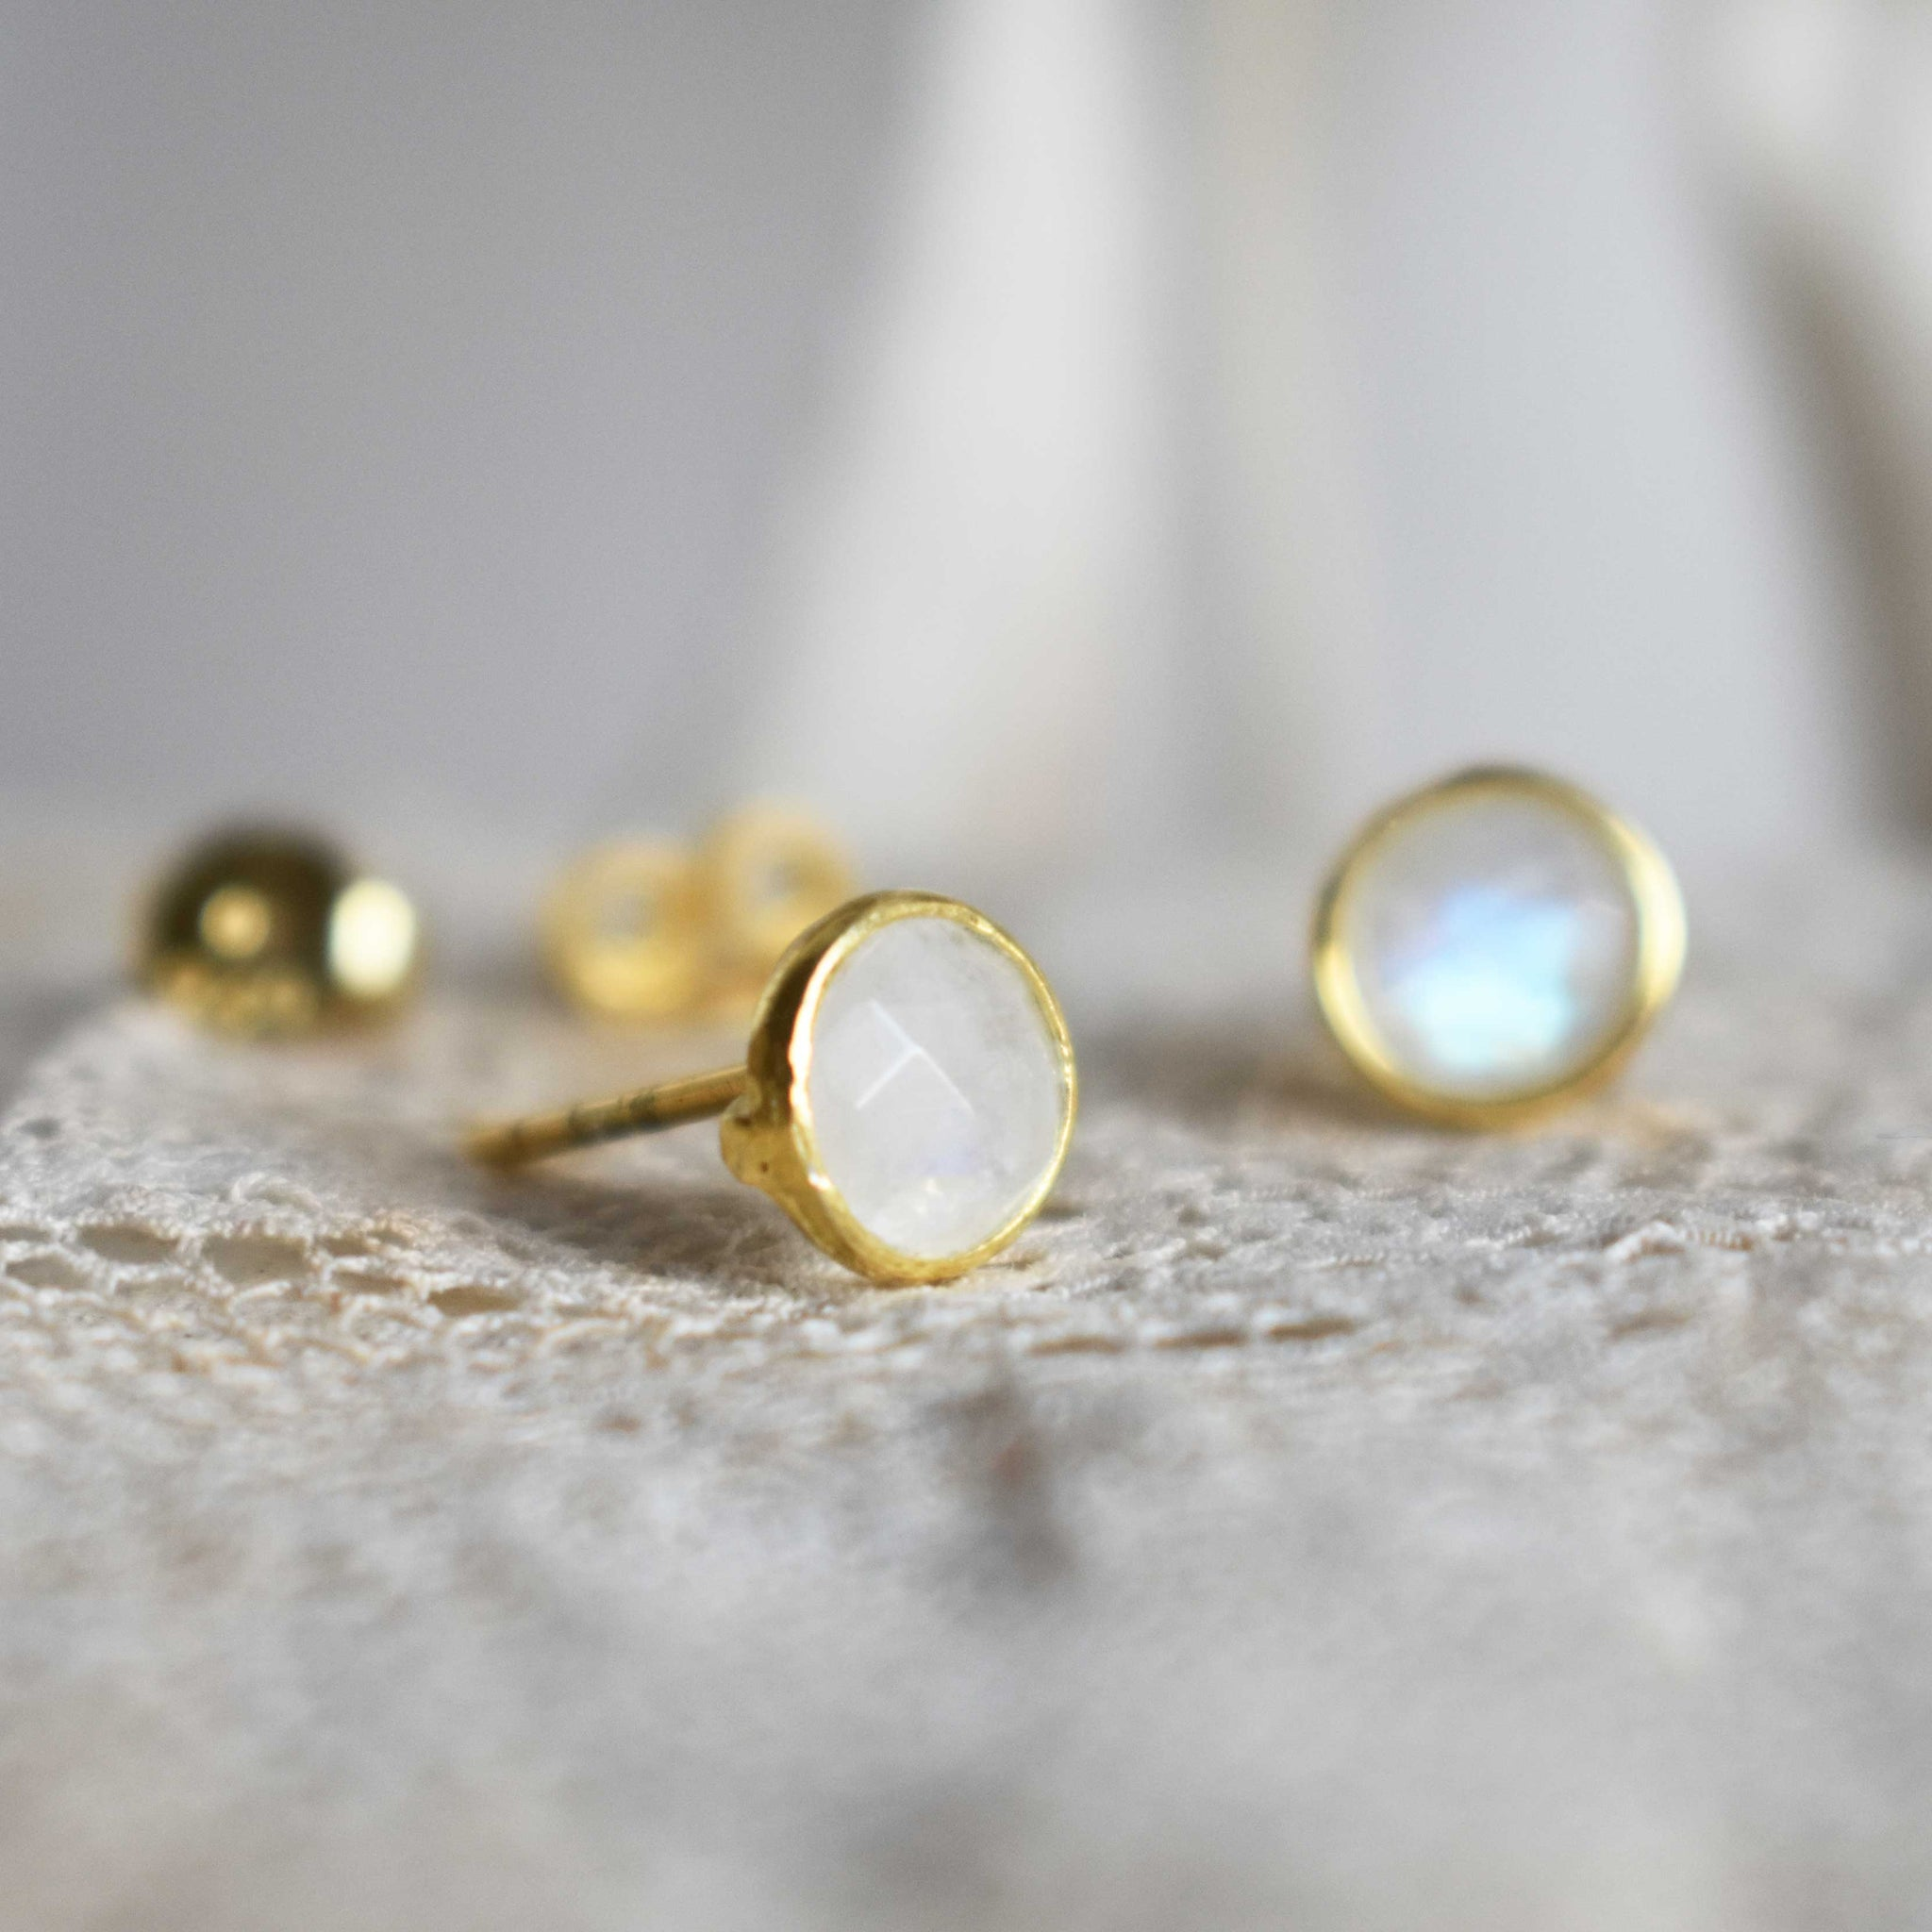 Earstuds *laia* moonstone round